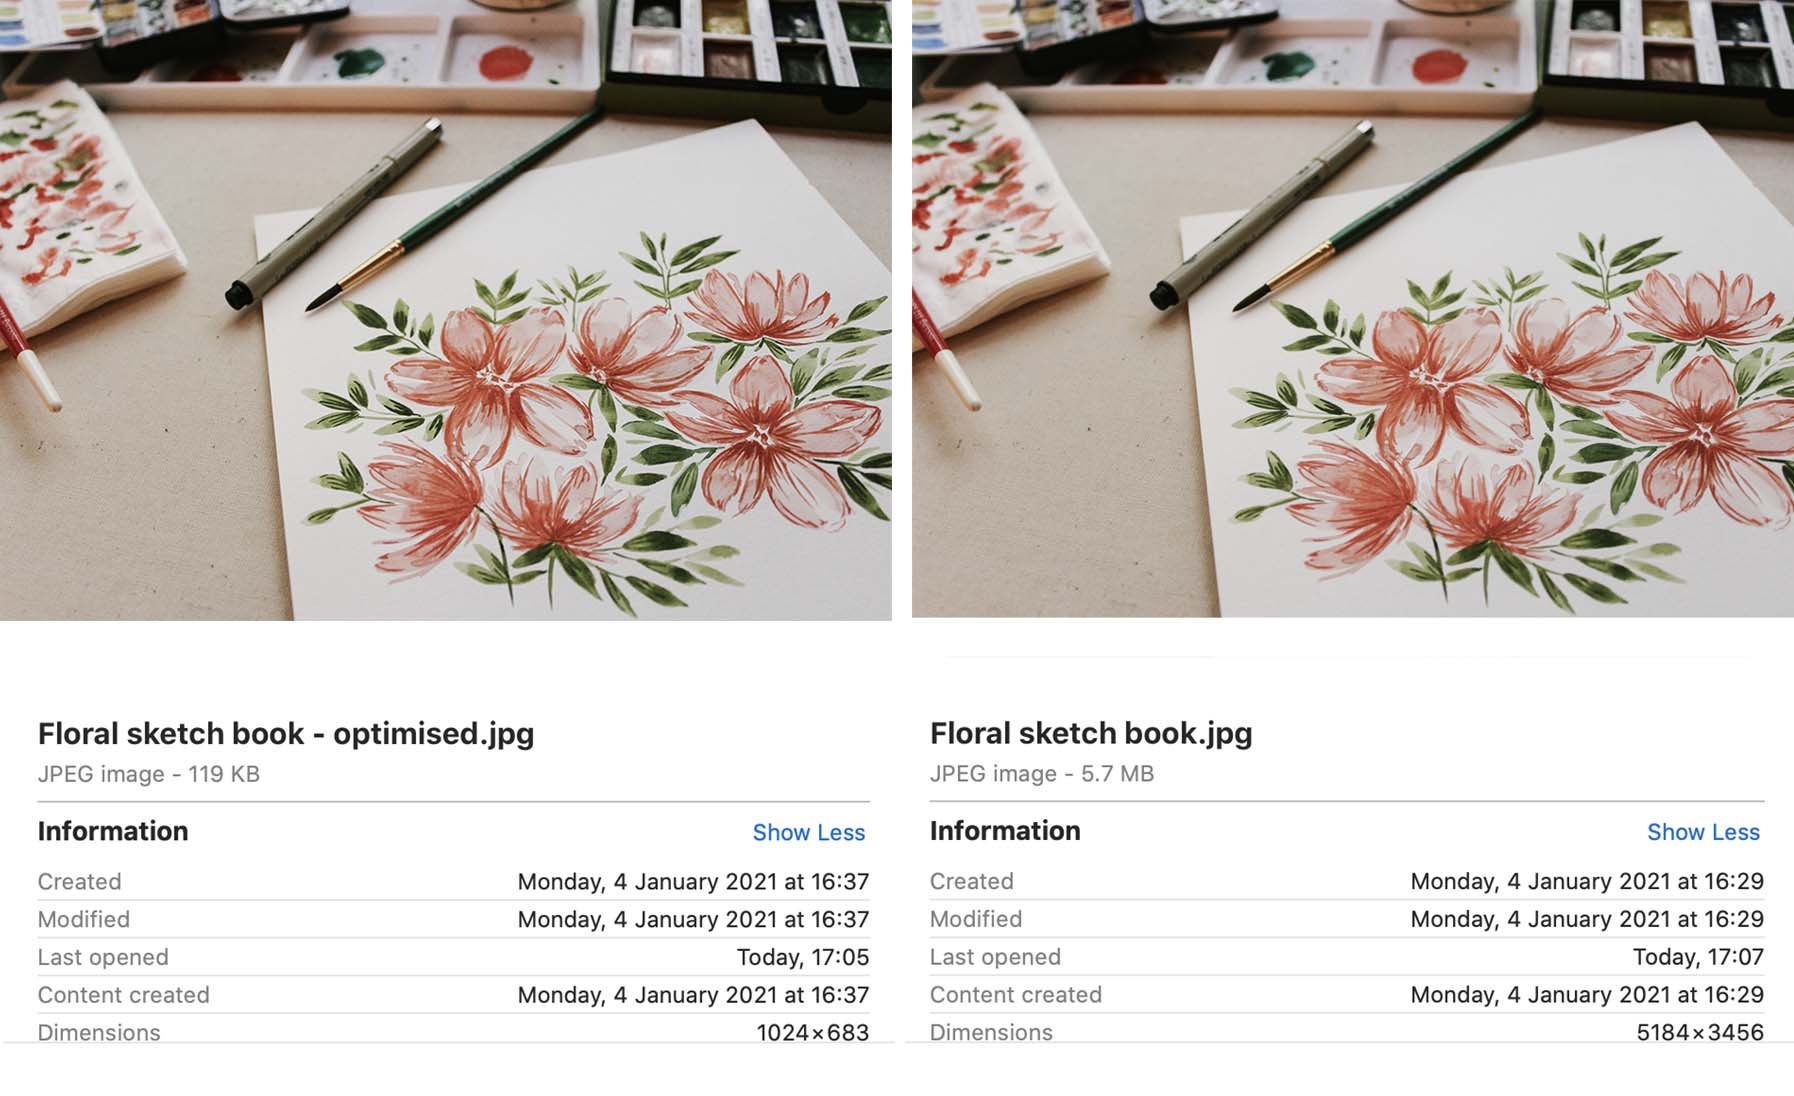 Image comparison showing the image information on an optimised and unoptimised image.